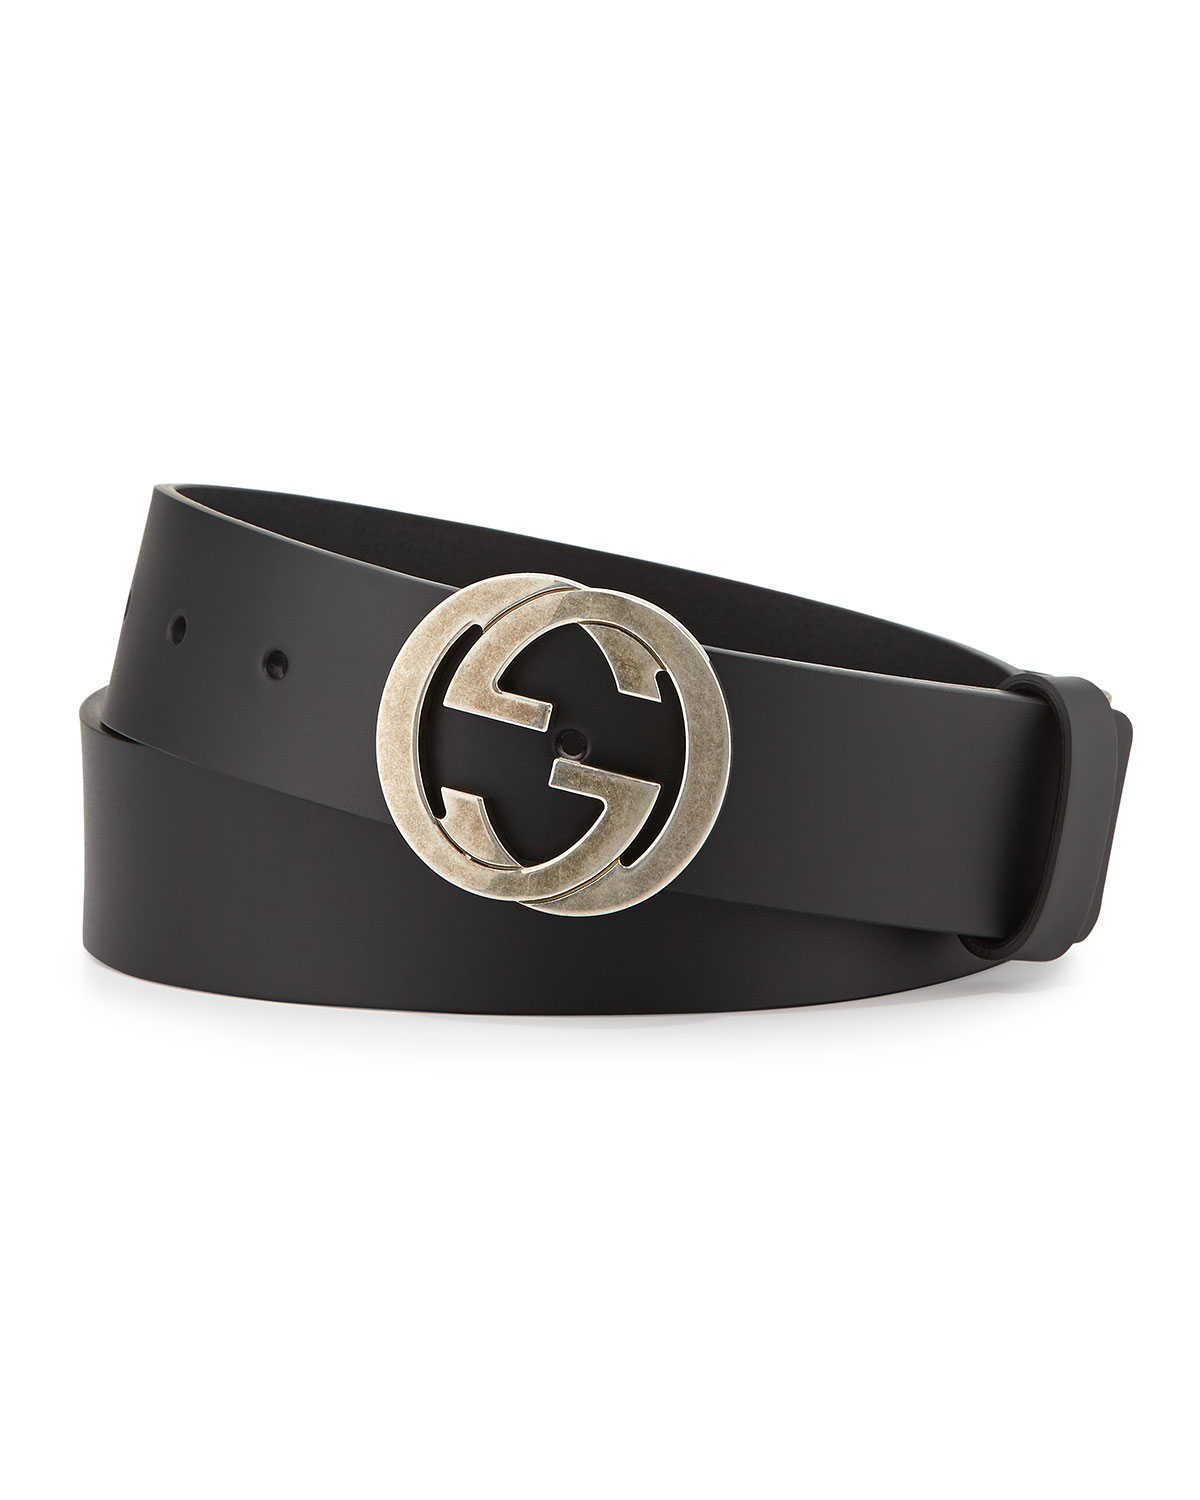 f0ebe794a8d Gucci Leather Belt with Interlocking G Buckle